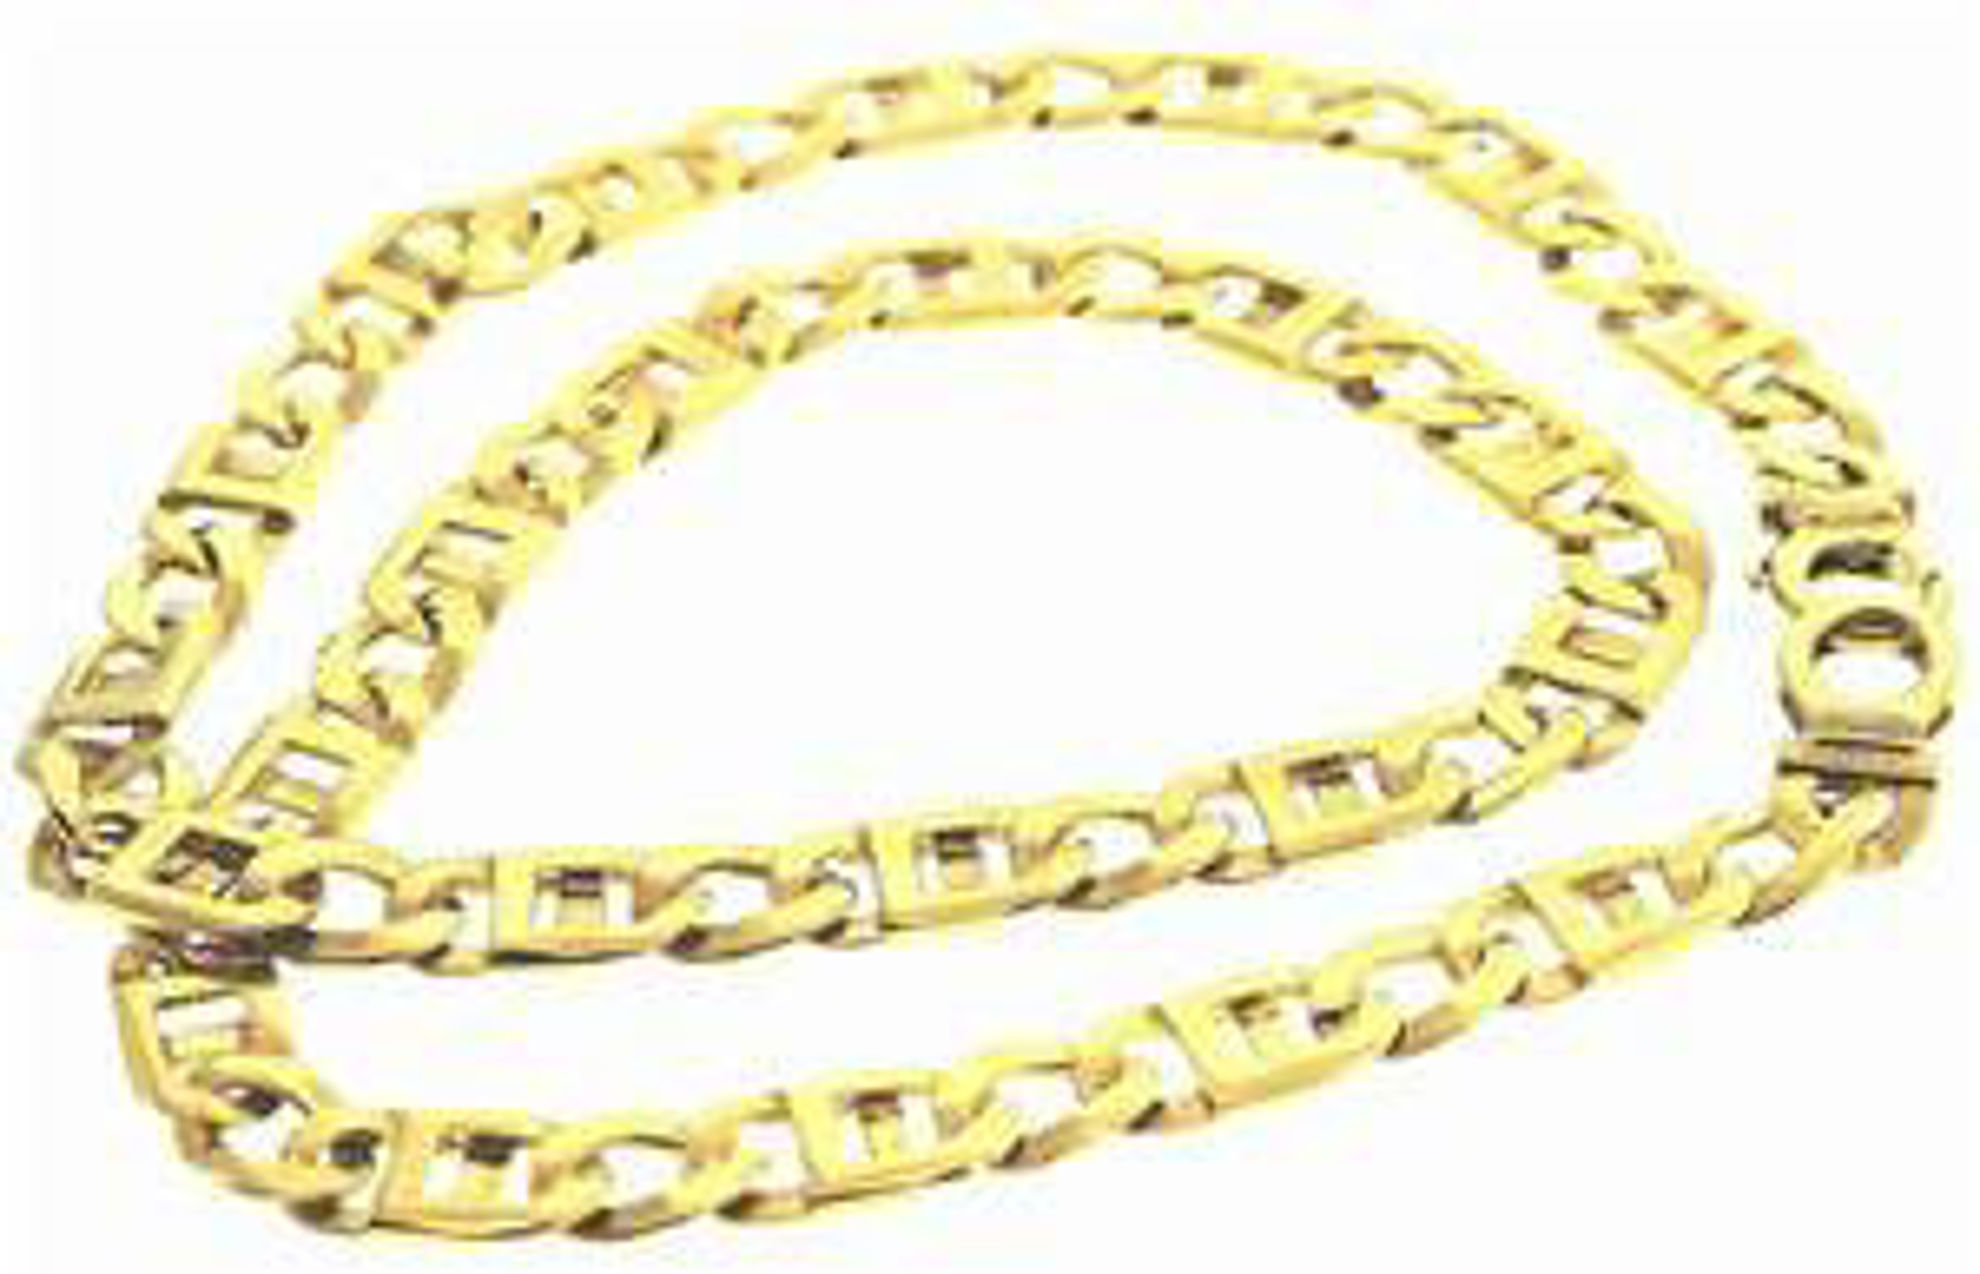 Picture of Chains 10kt-45.2 DWT, 70.3 Grams